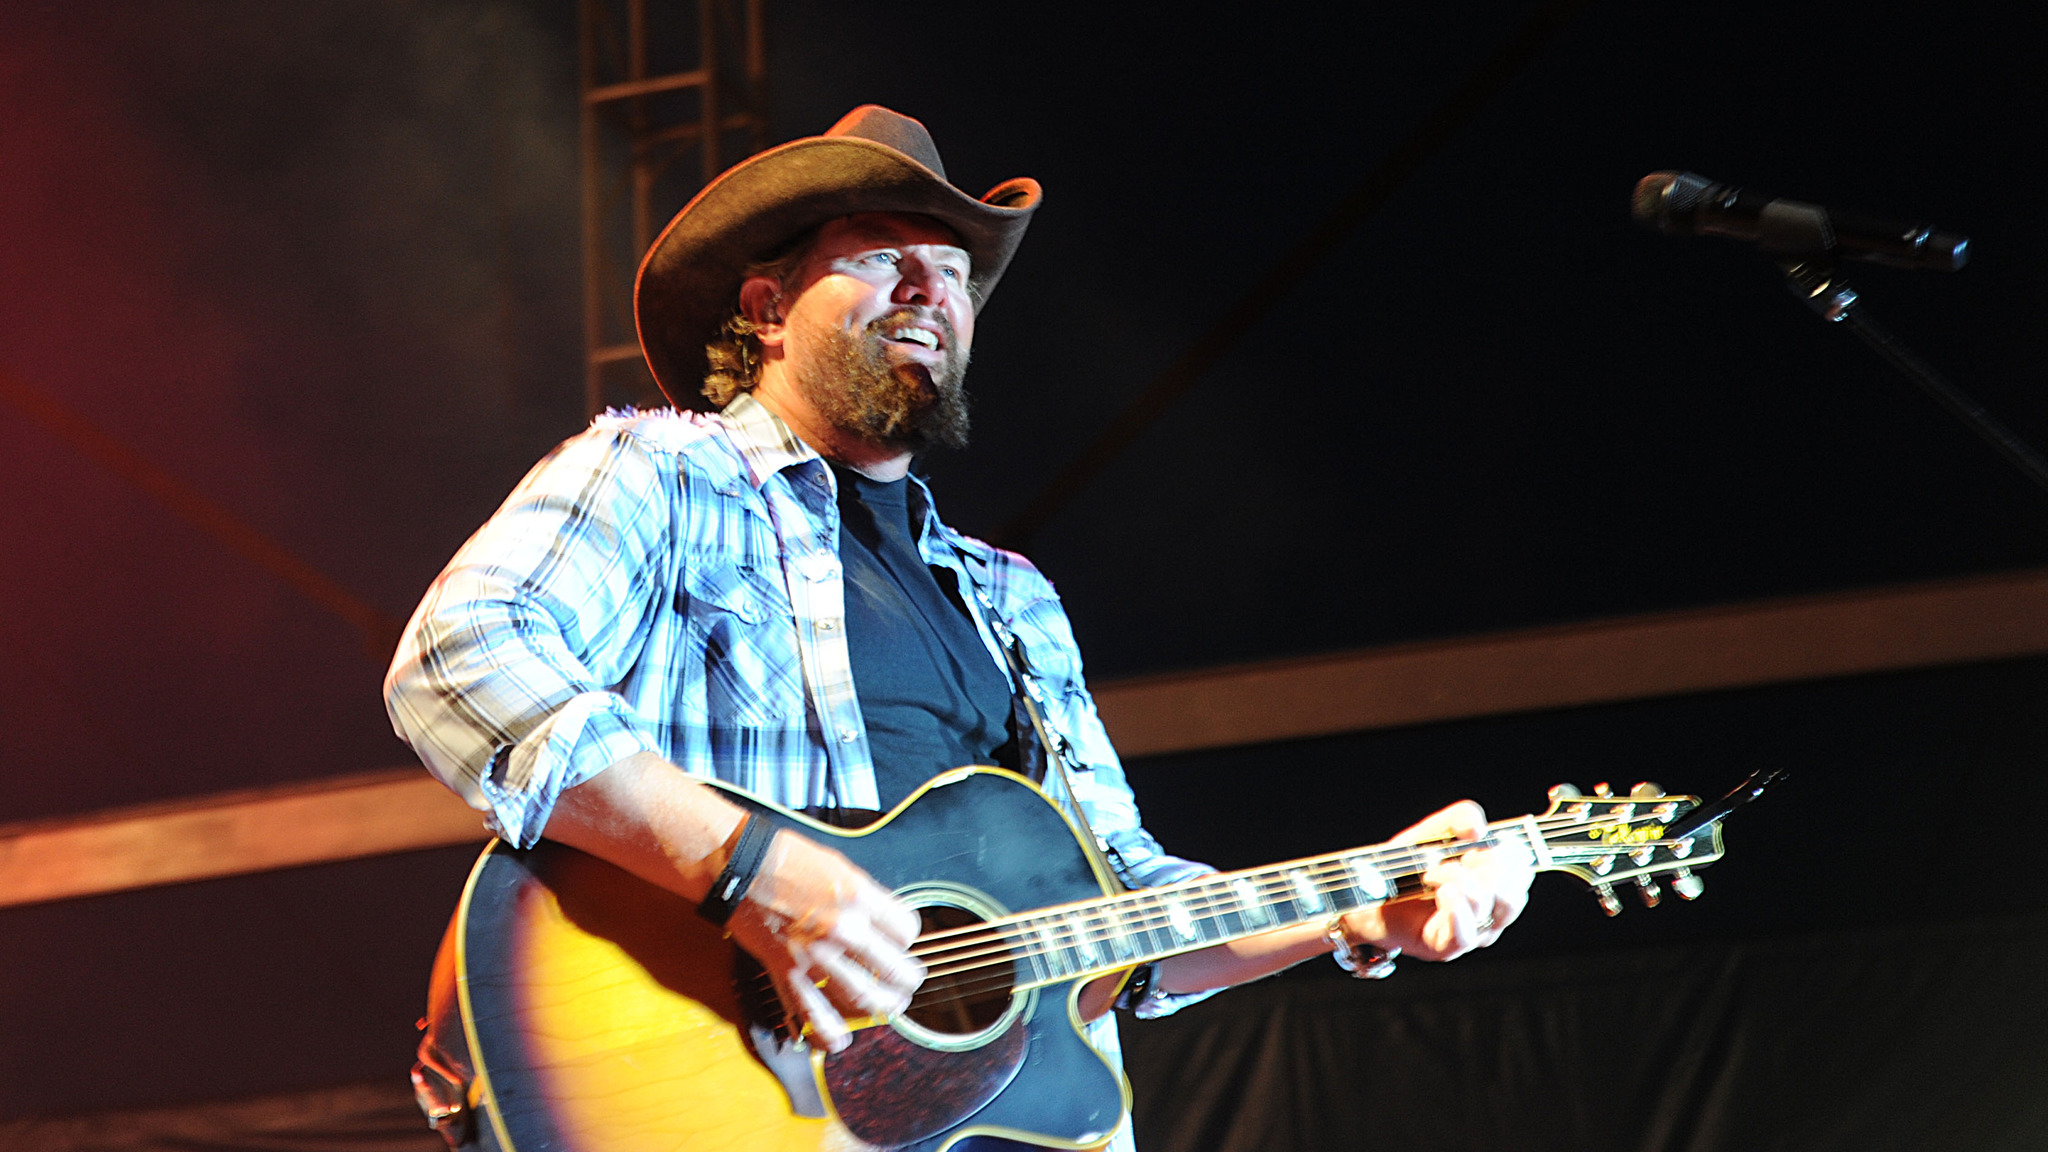 Toby Keith | Interstates & Tailgates Tour Presented by Ford F-Series